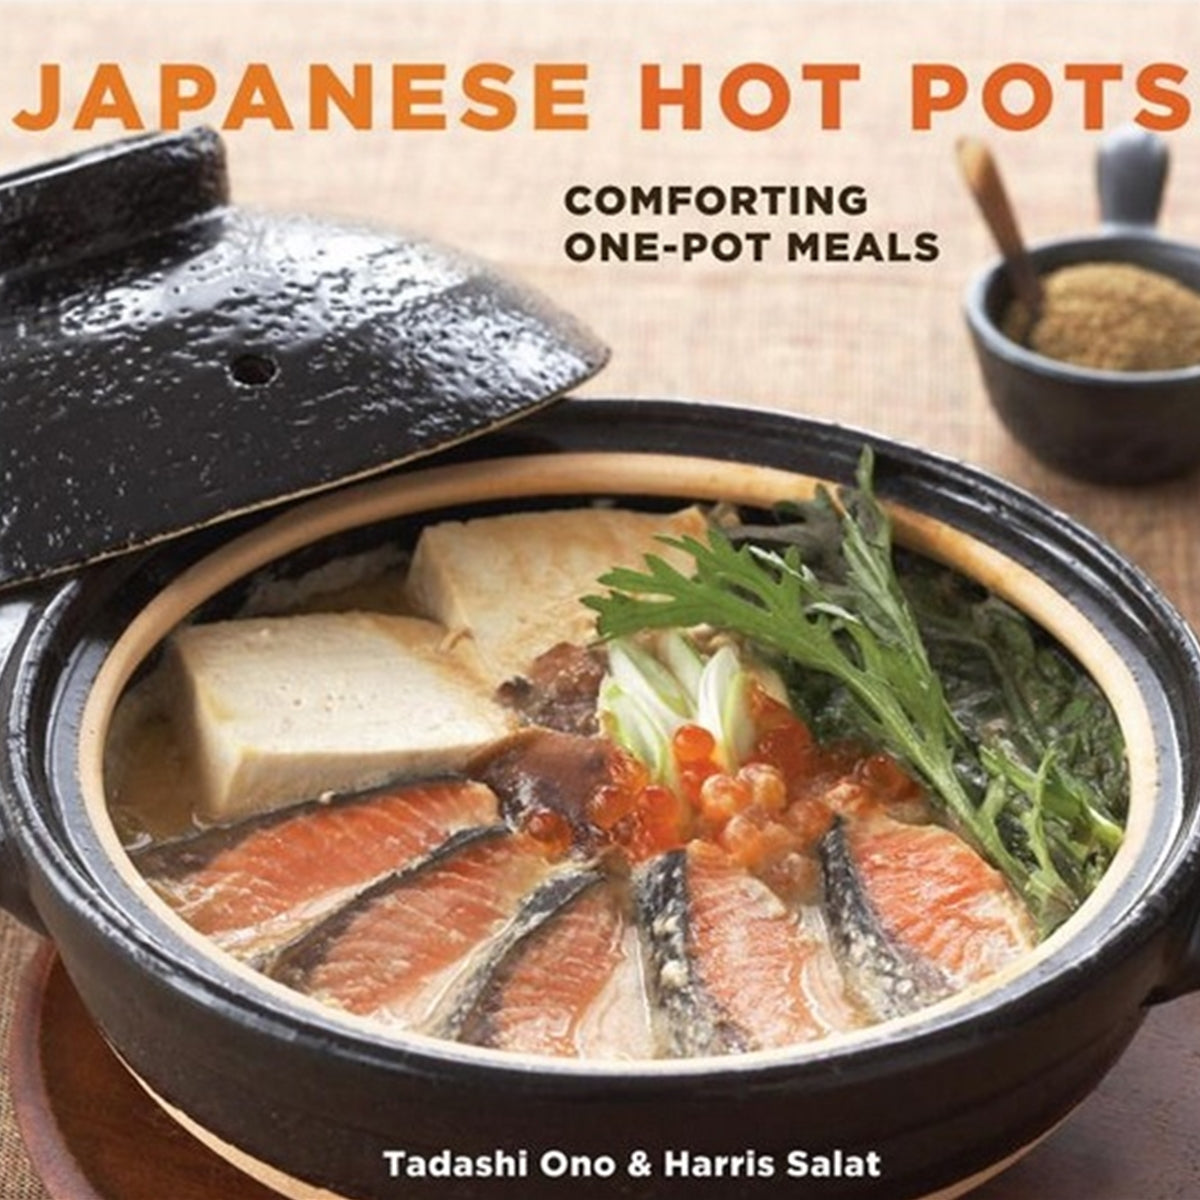 Japanese Hot Pots by Tadashi Ono & Harris Salat